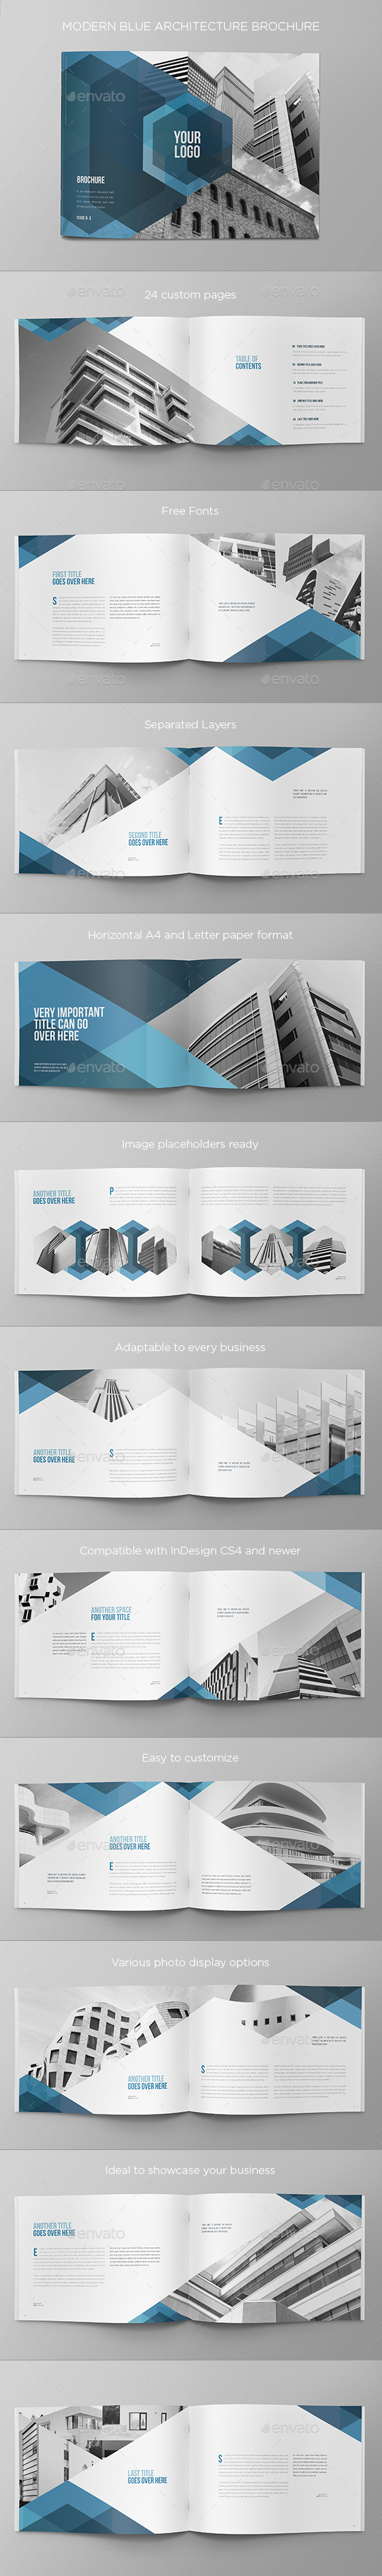 Modern Blue Architecture Brochure - Brochures Print Templates